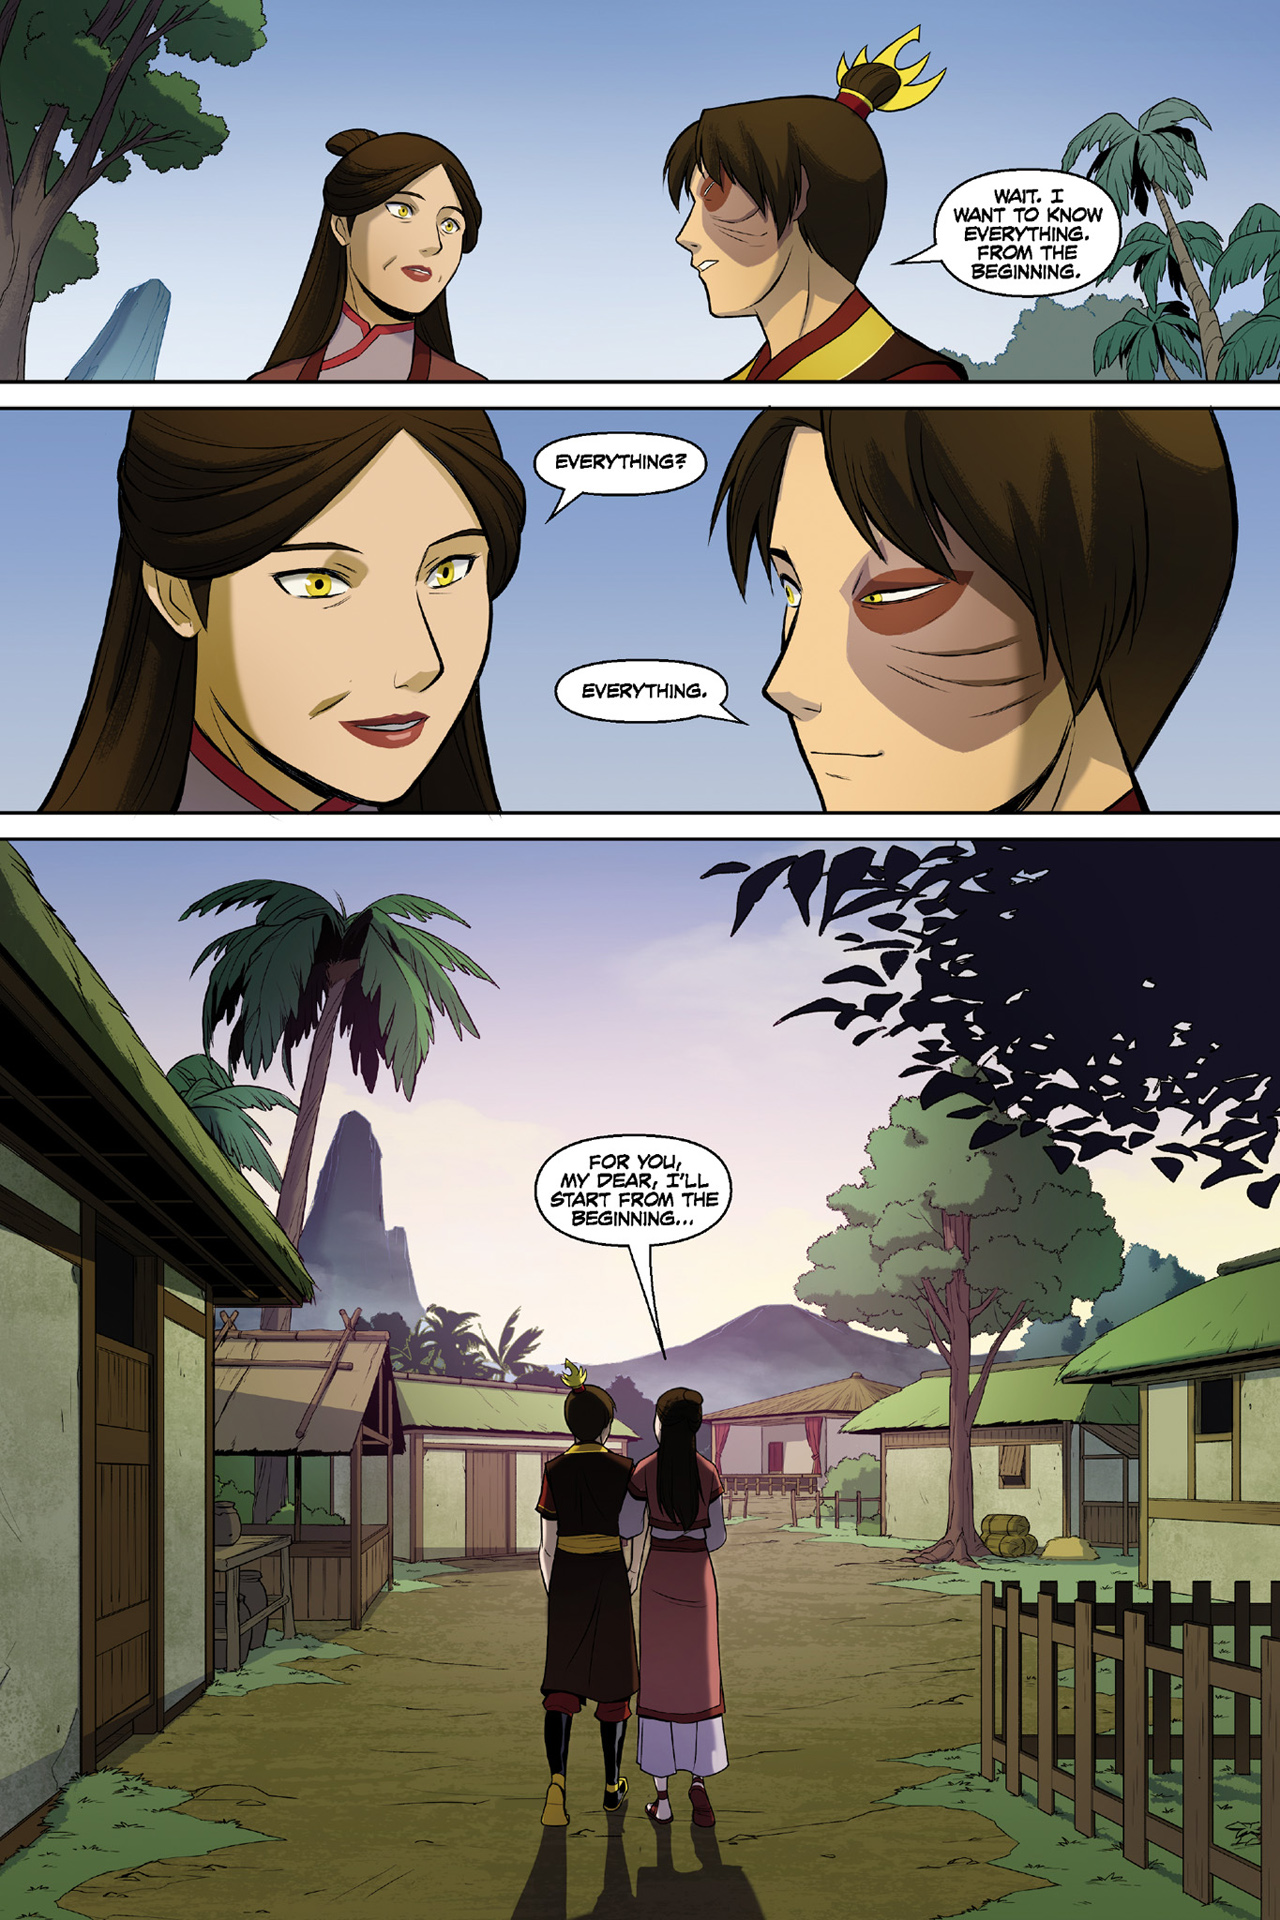 Read online Nickelodeon Avatar: The Last Airbender - The Search comic -  Issue # Part 3 - 76